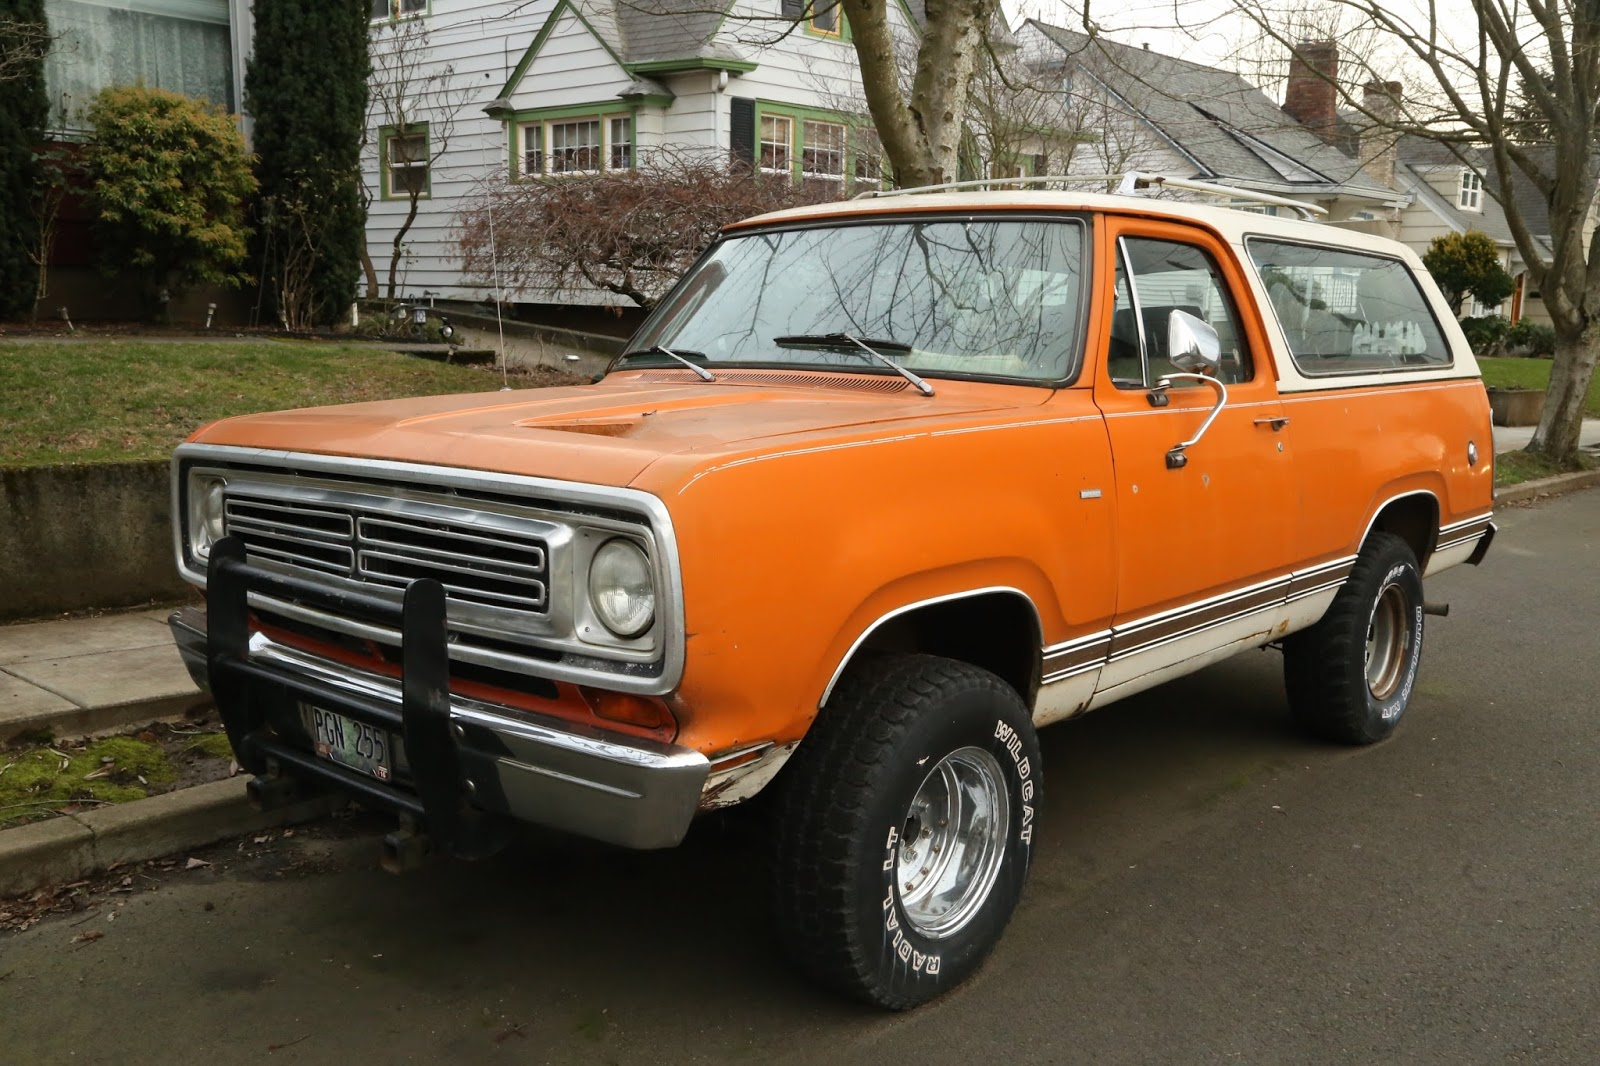 1975 Plymouth Trail Duster - Information and photos ...